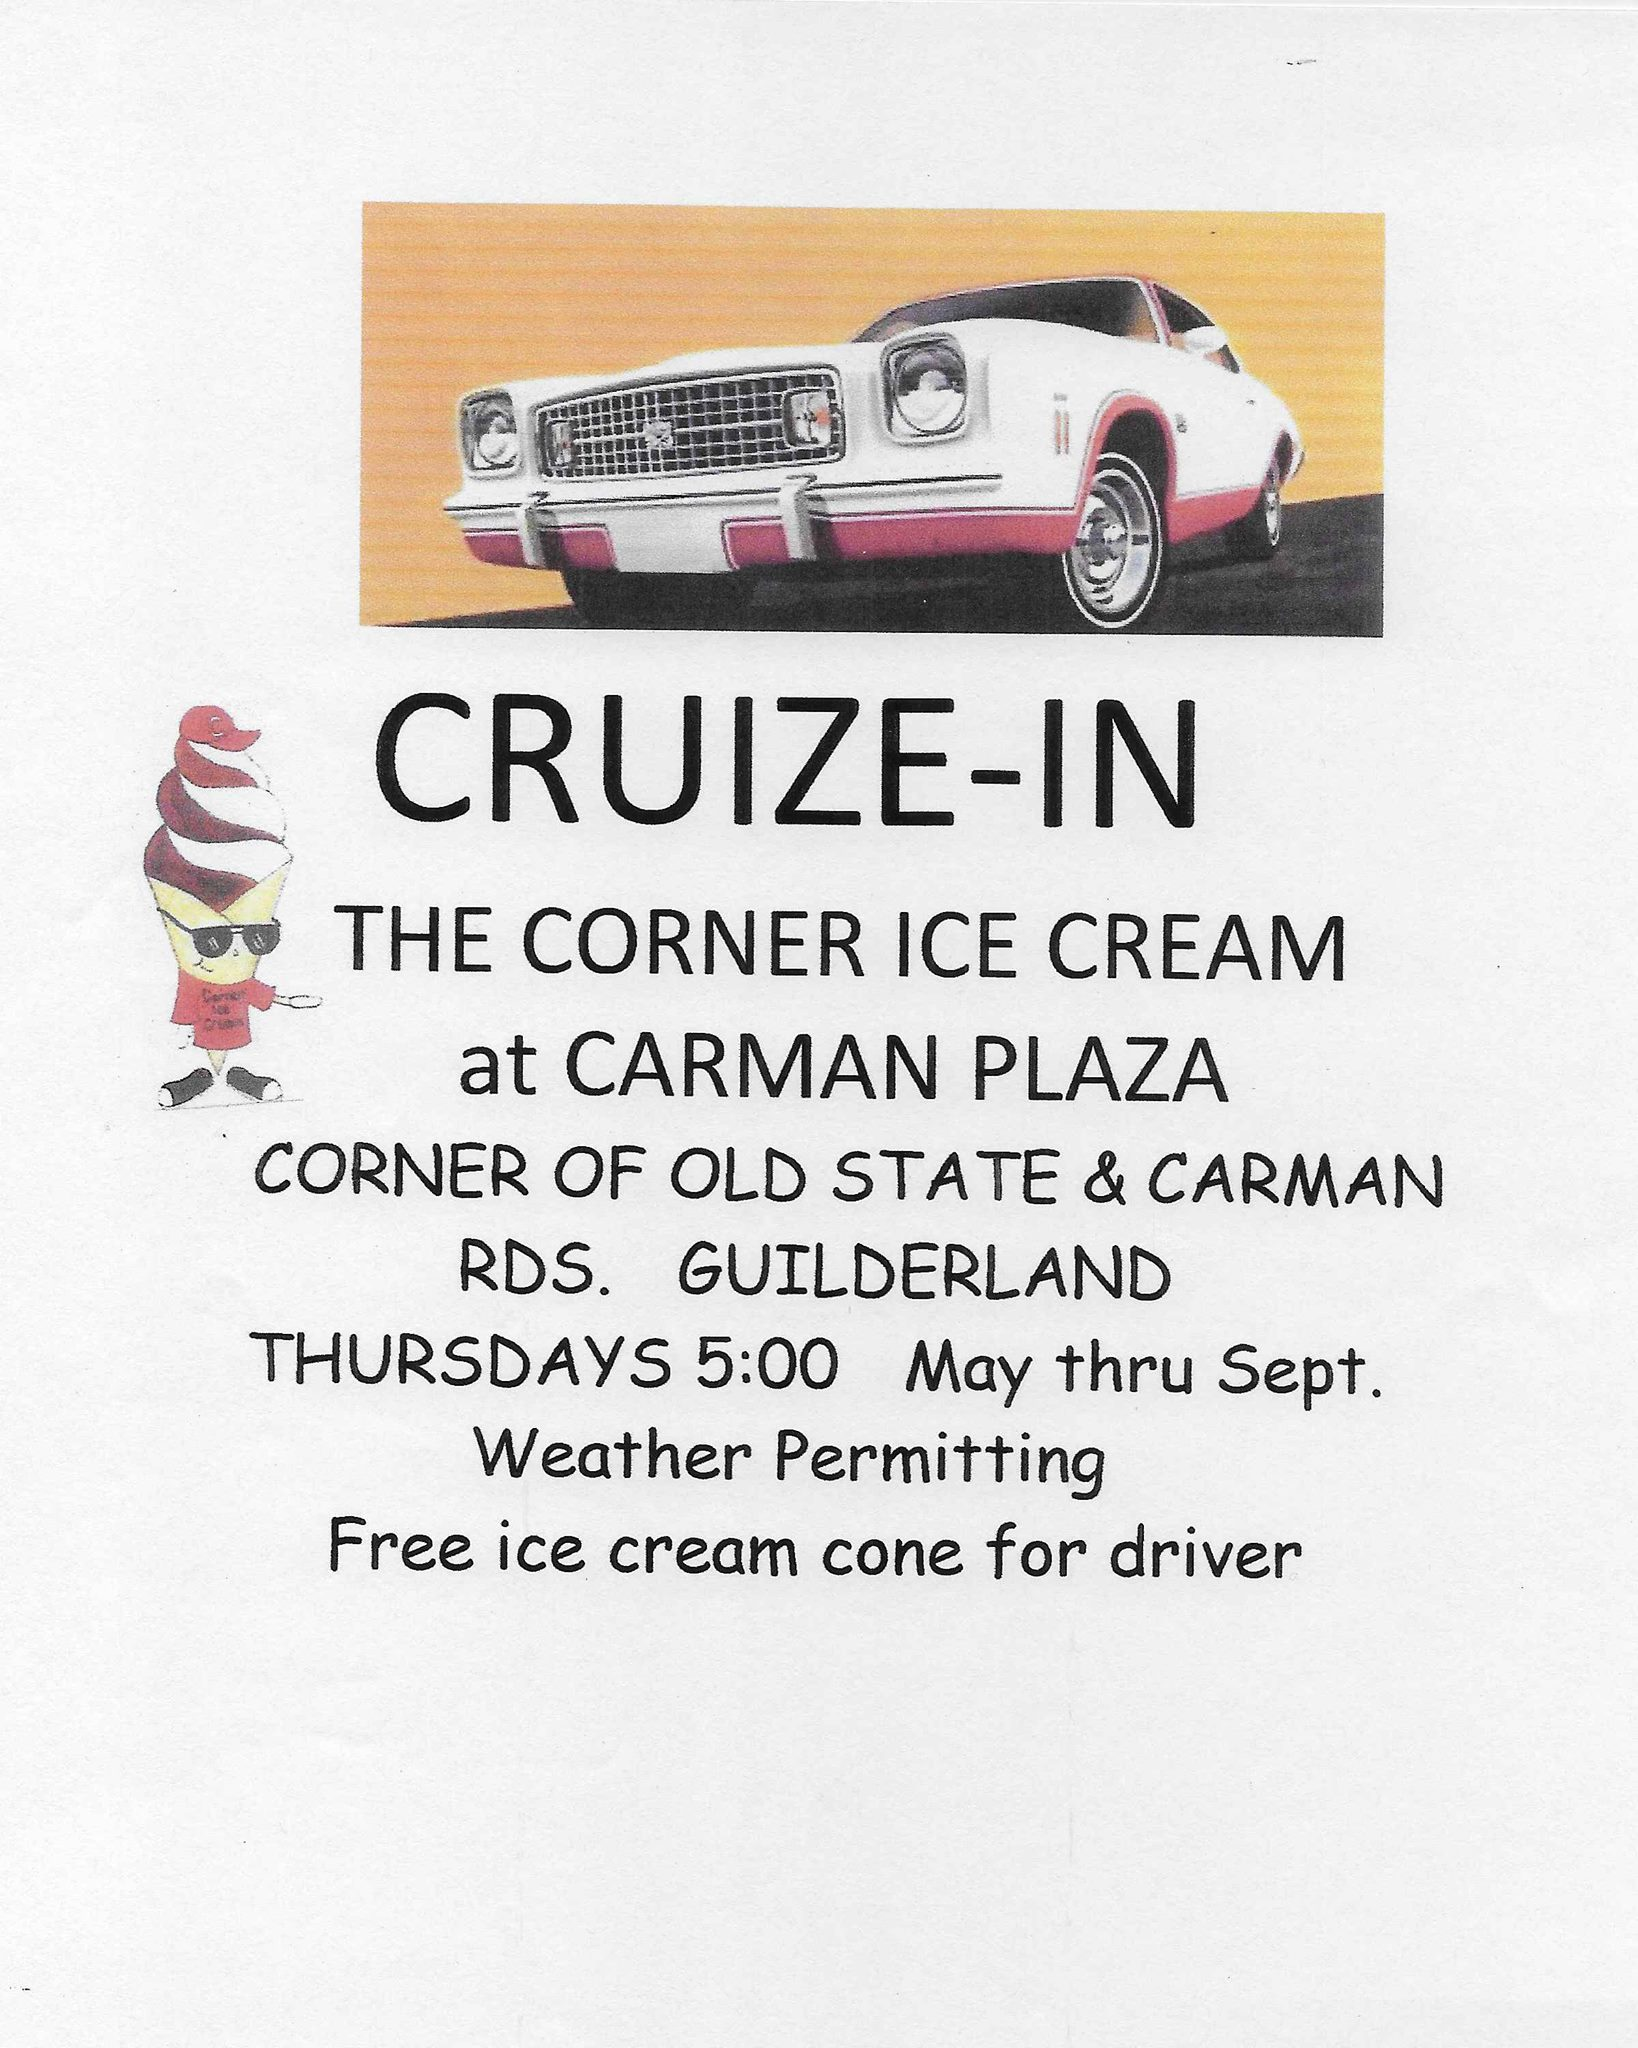 Cruize-In The Corner Ice Cream at Carman Plaza 2018 @ Corner Ice Cream Store | Schenectady | New York | United States